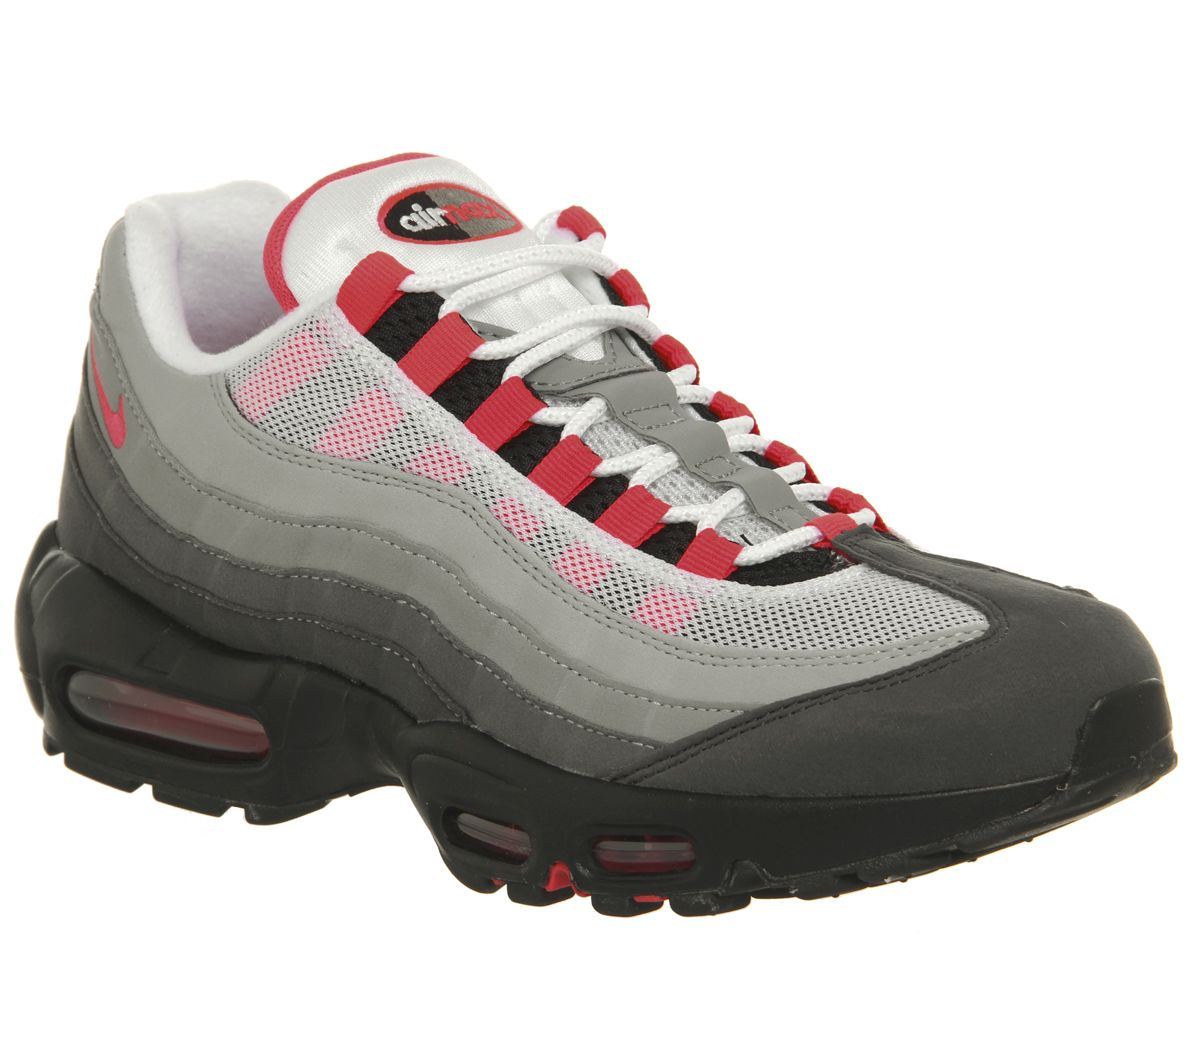 cheap for discount b4ac7 f97f5 Nike Air Max 95 Trainers White Solar Red Granite - Hers trainers